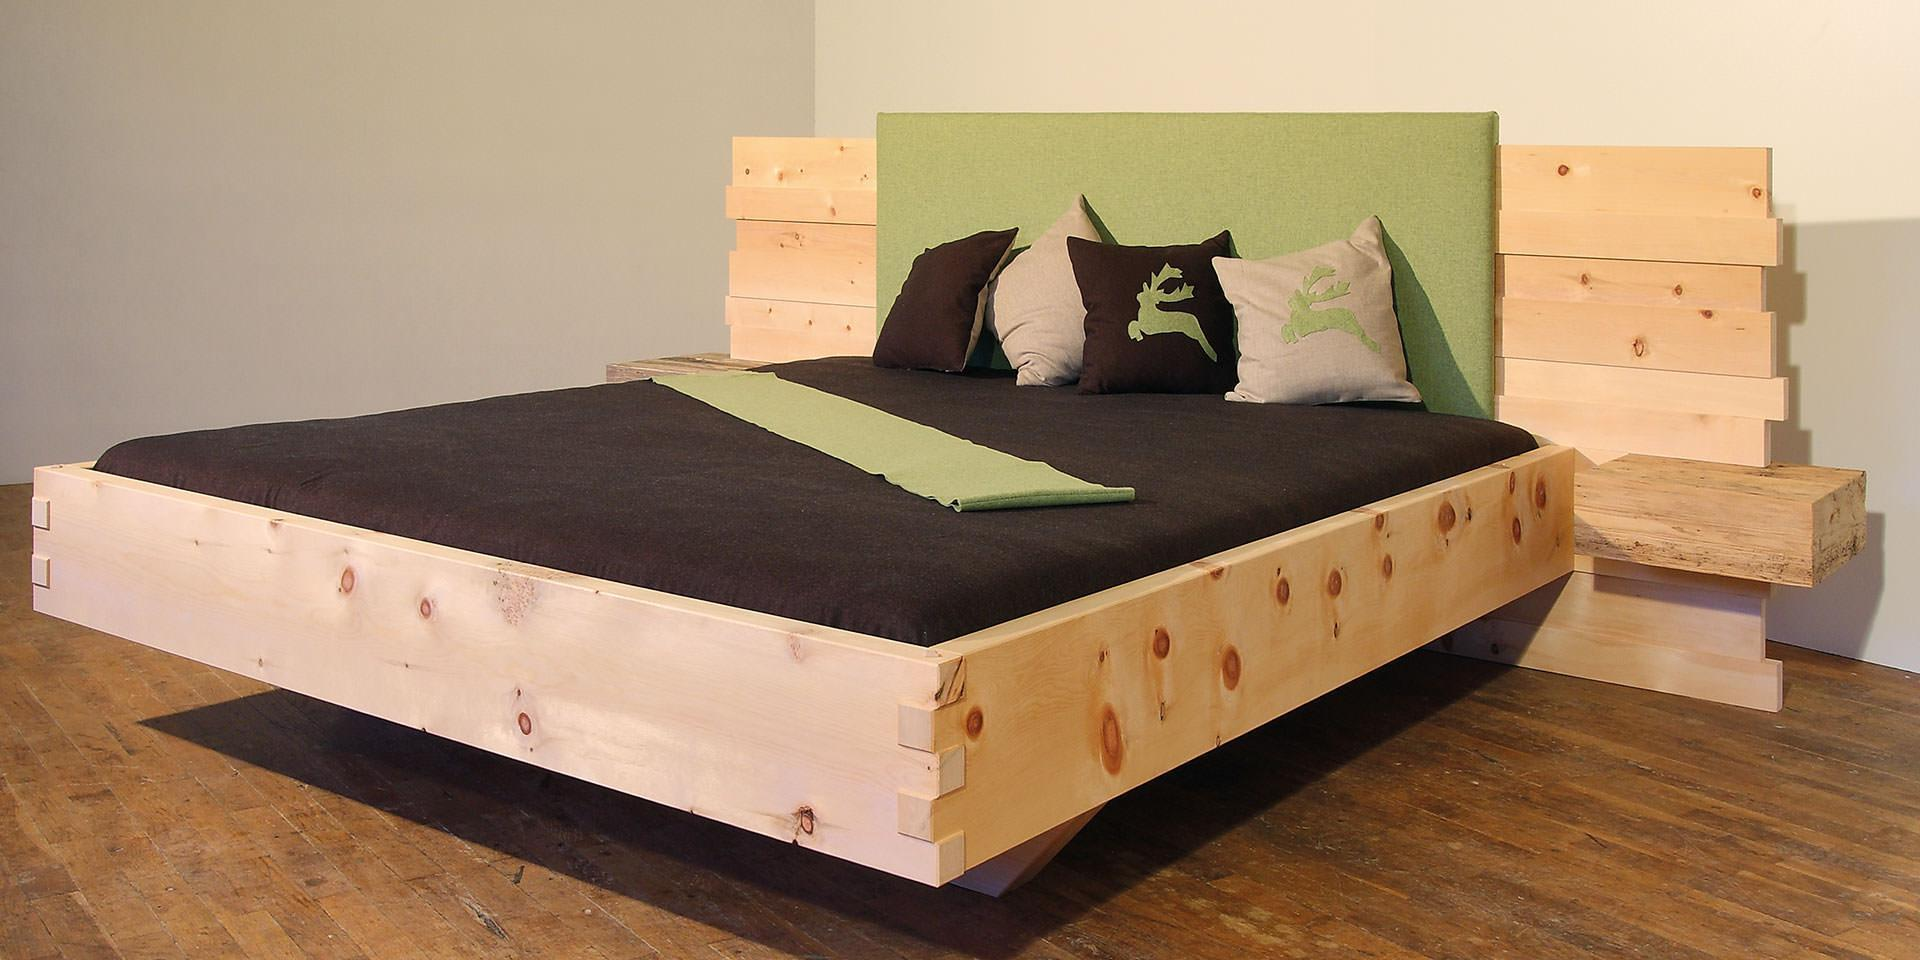 tagideen f r kopfteil bett wohndesign und m bel ideen. Black Bedroom Furniture Sets. Home Design Ideas